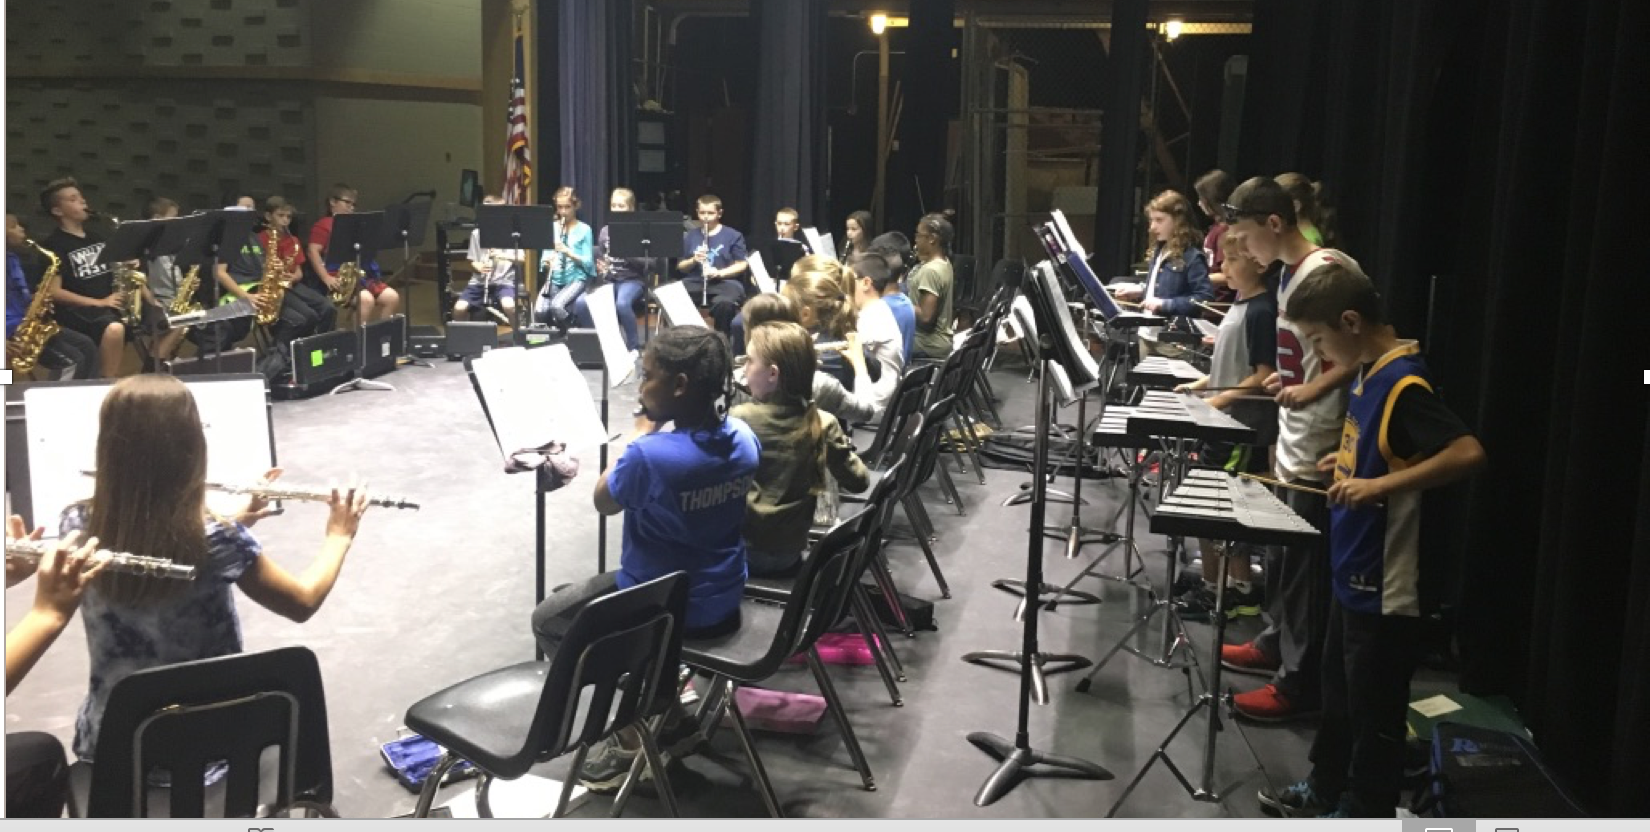 """Need a change of pace in your band rehearsal? Click here to learn how to have a """"mix it up"""" day in your music classroom! Get students outside of their familiar """"bubbles"""" and implement some of the fun ideas suggested in this article such as letting students change chairs, the director moving around, having the students rehearse in a circle, silent rehearsals, and much more! For great band teaching ideas, rehearsal tips and beginning band methods and games, visit Band DirectorsTalkShop.com!"""